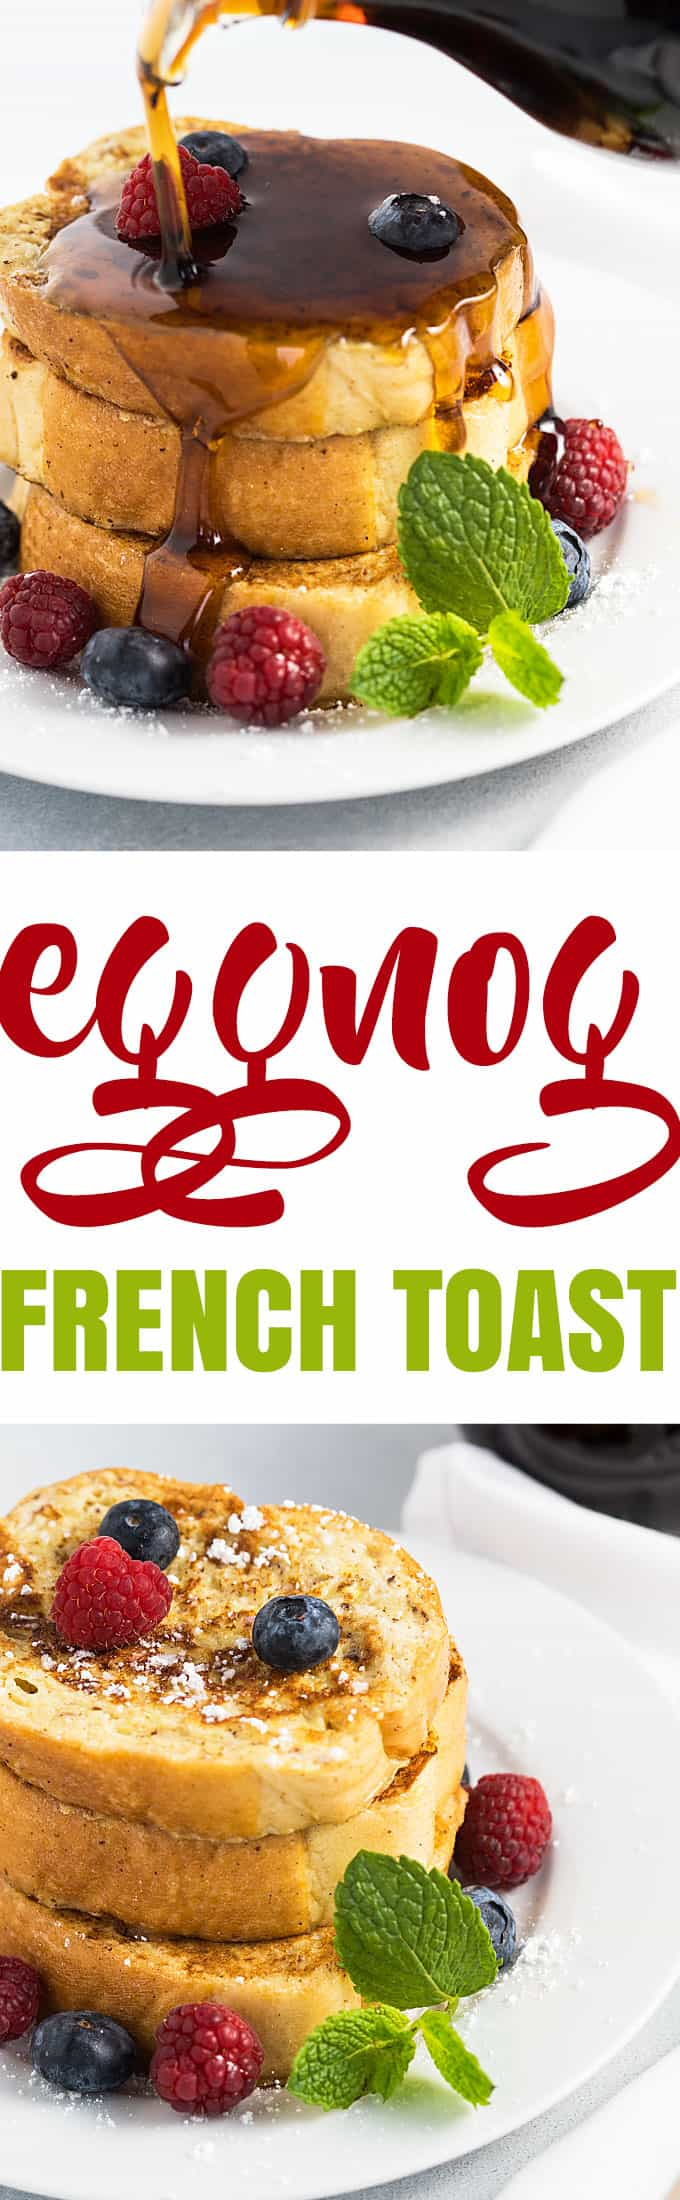 Eggnog French Toast - A quick and easy holiday breakfast!